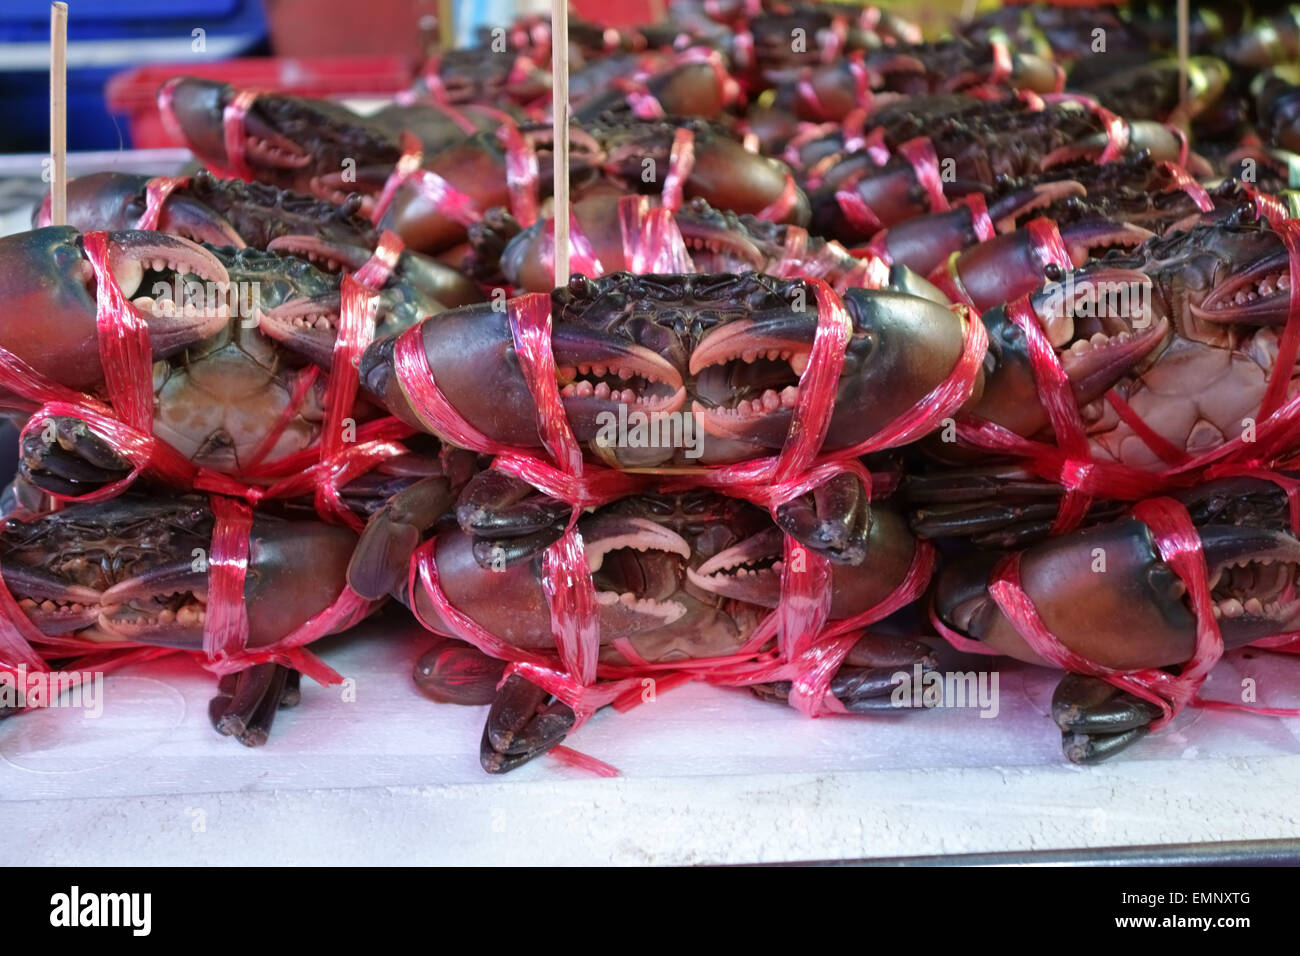 Bound tied live crabs on a stall in a Bangkok food market, Thailand - Stock Image